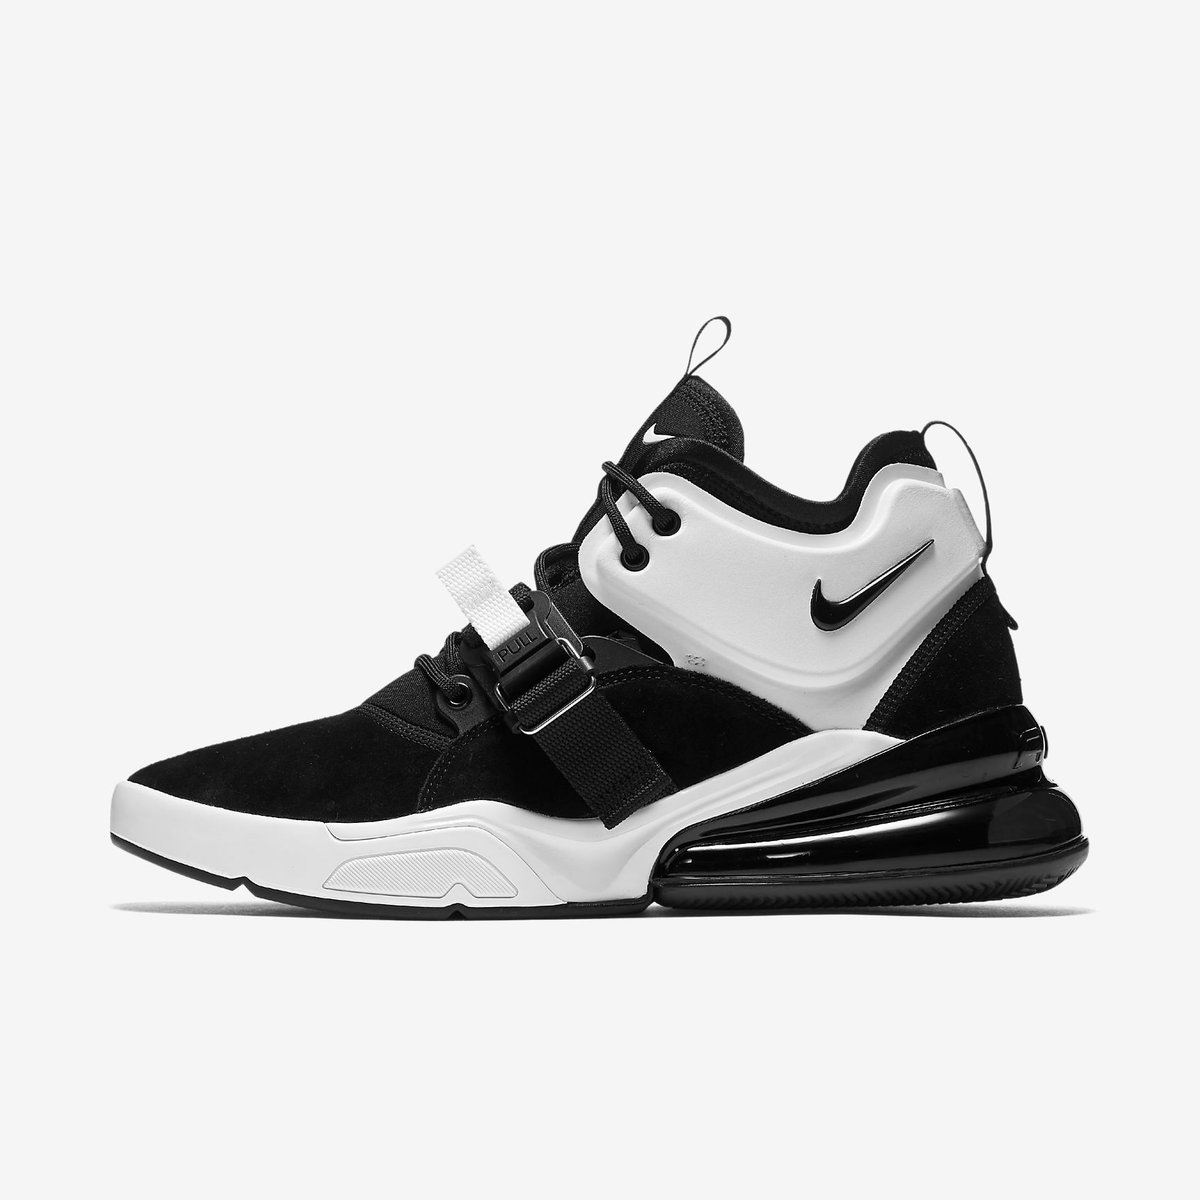 Two new Nike Air Force 270s now